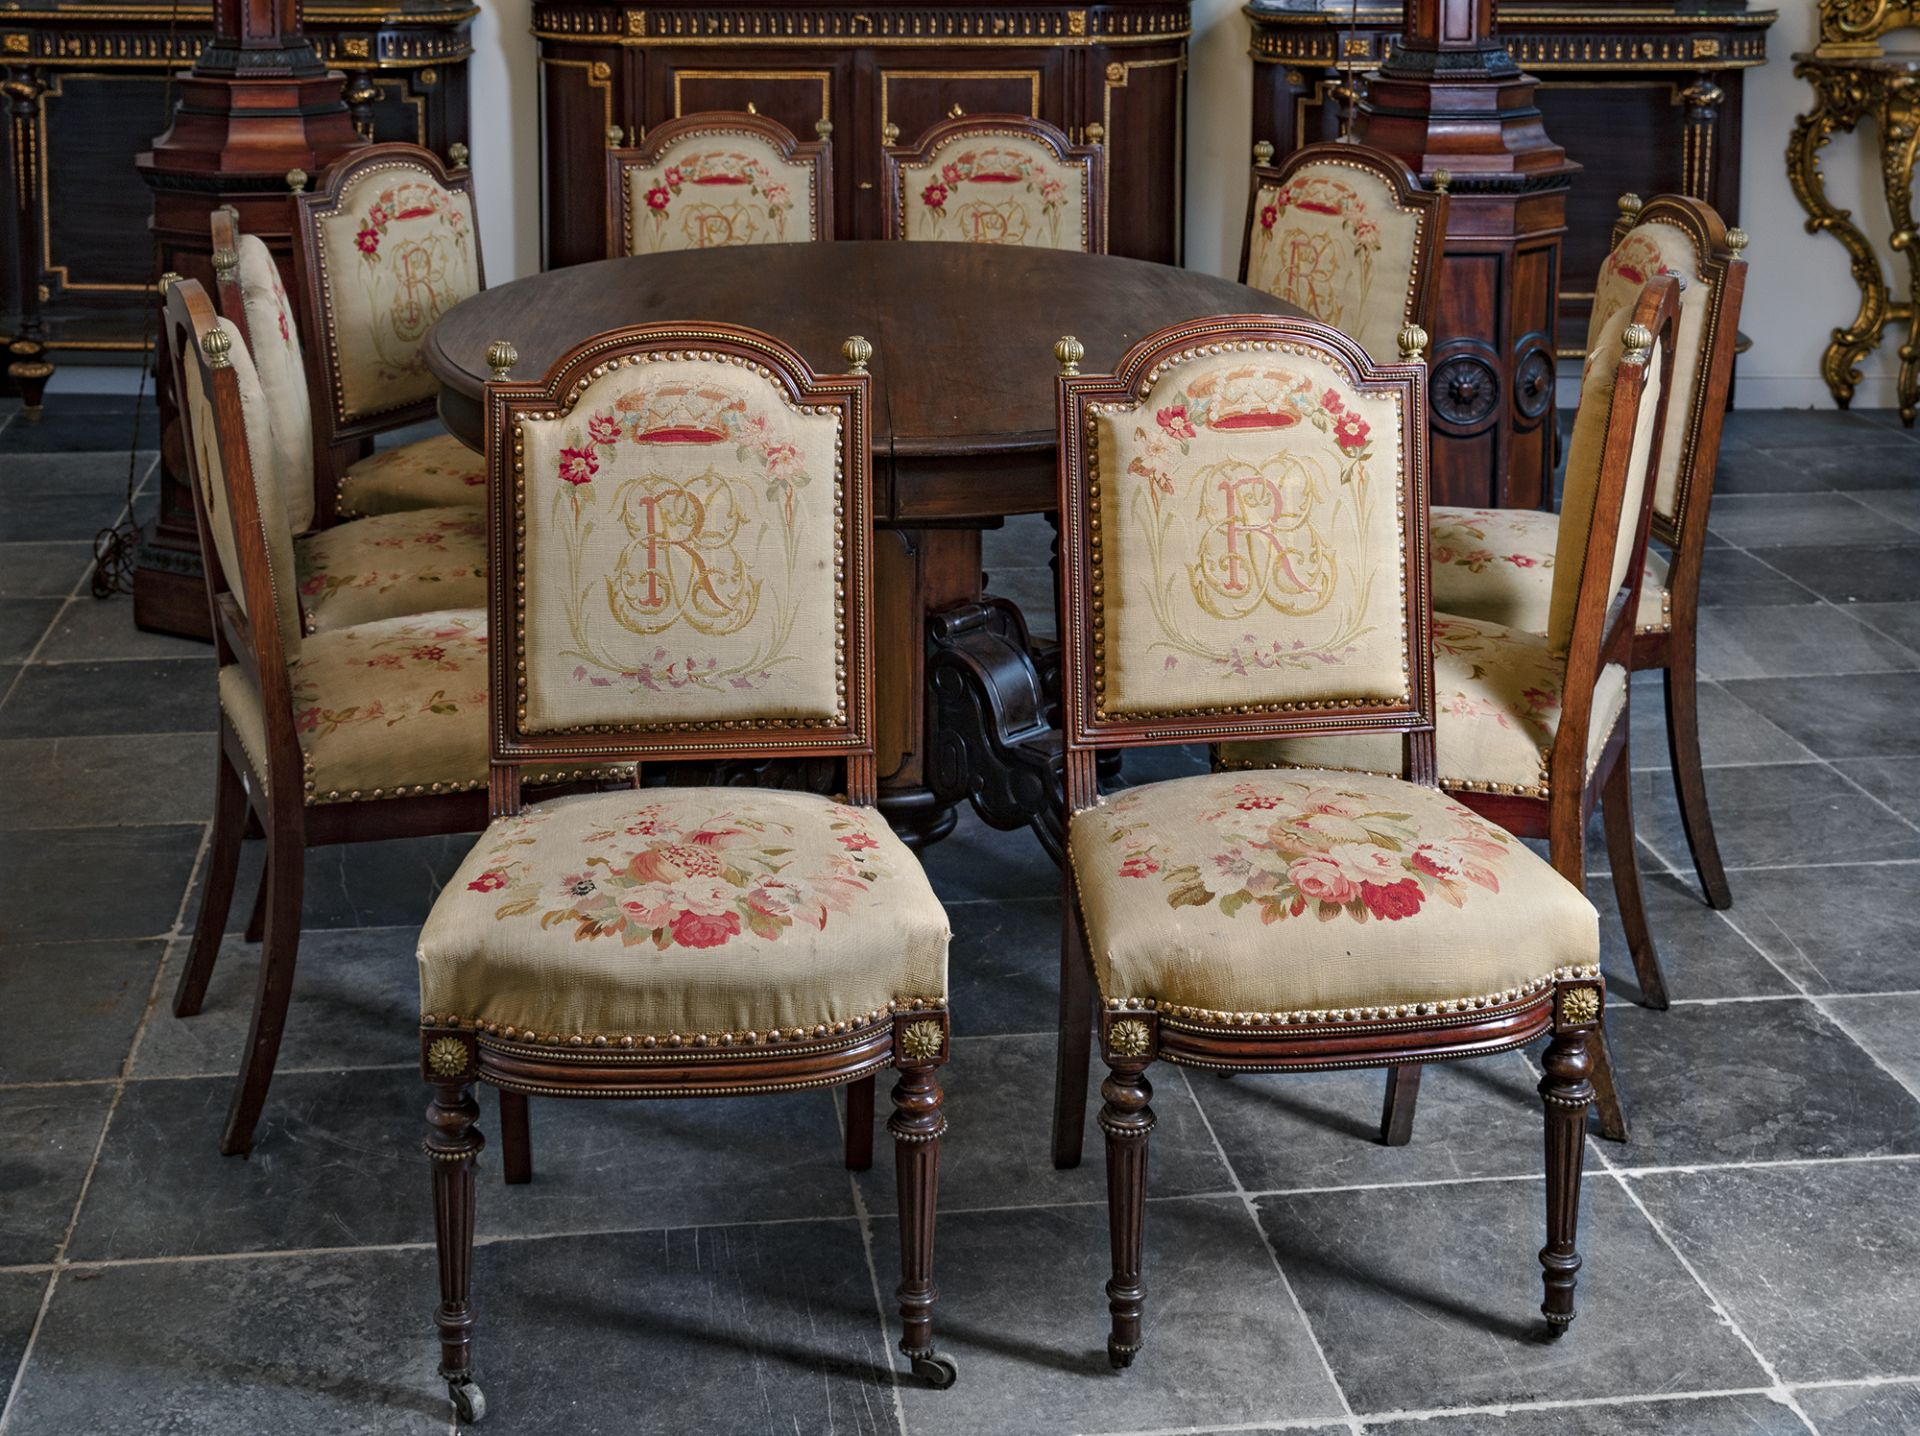 A FRENCH MAHOGANY DINING ROOM SET, 19TH CENTURY - Image 3 of 8